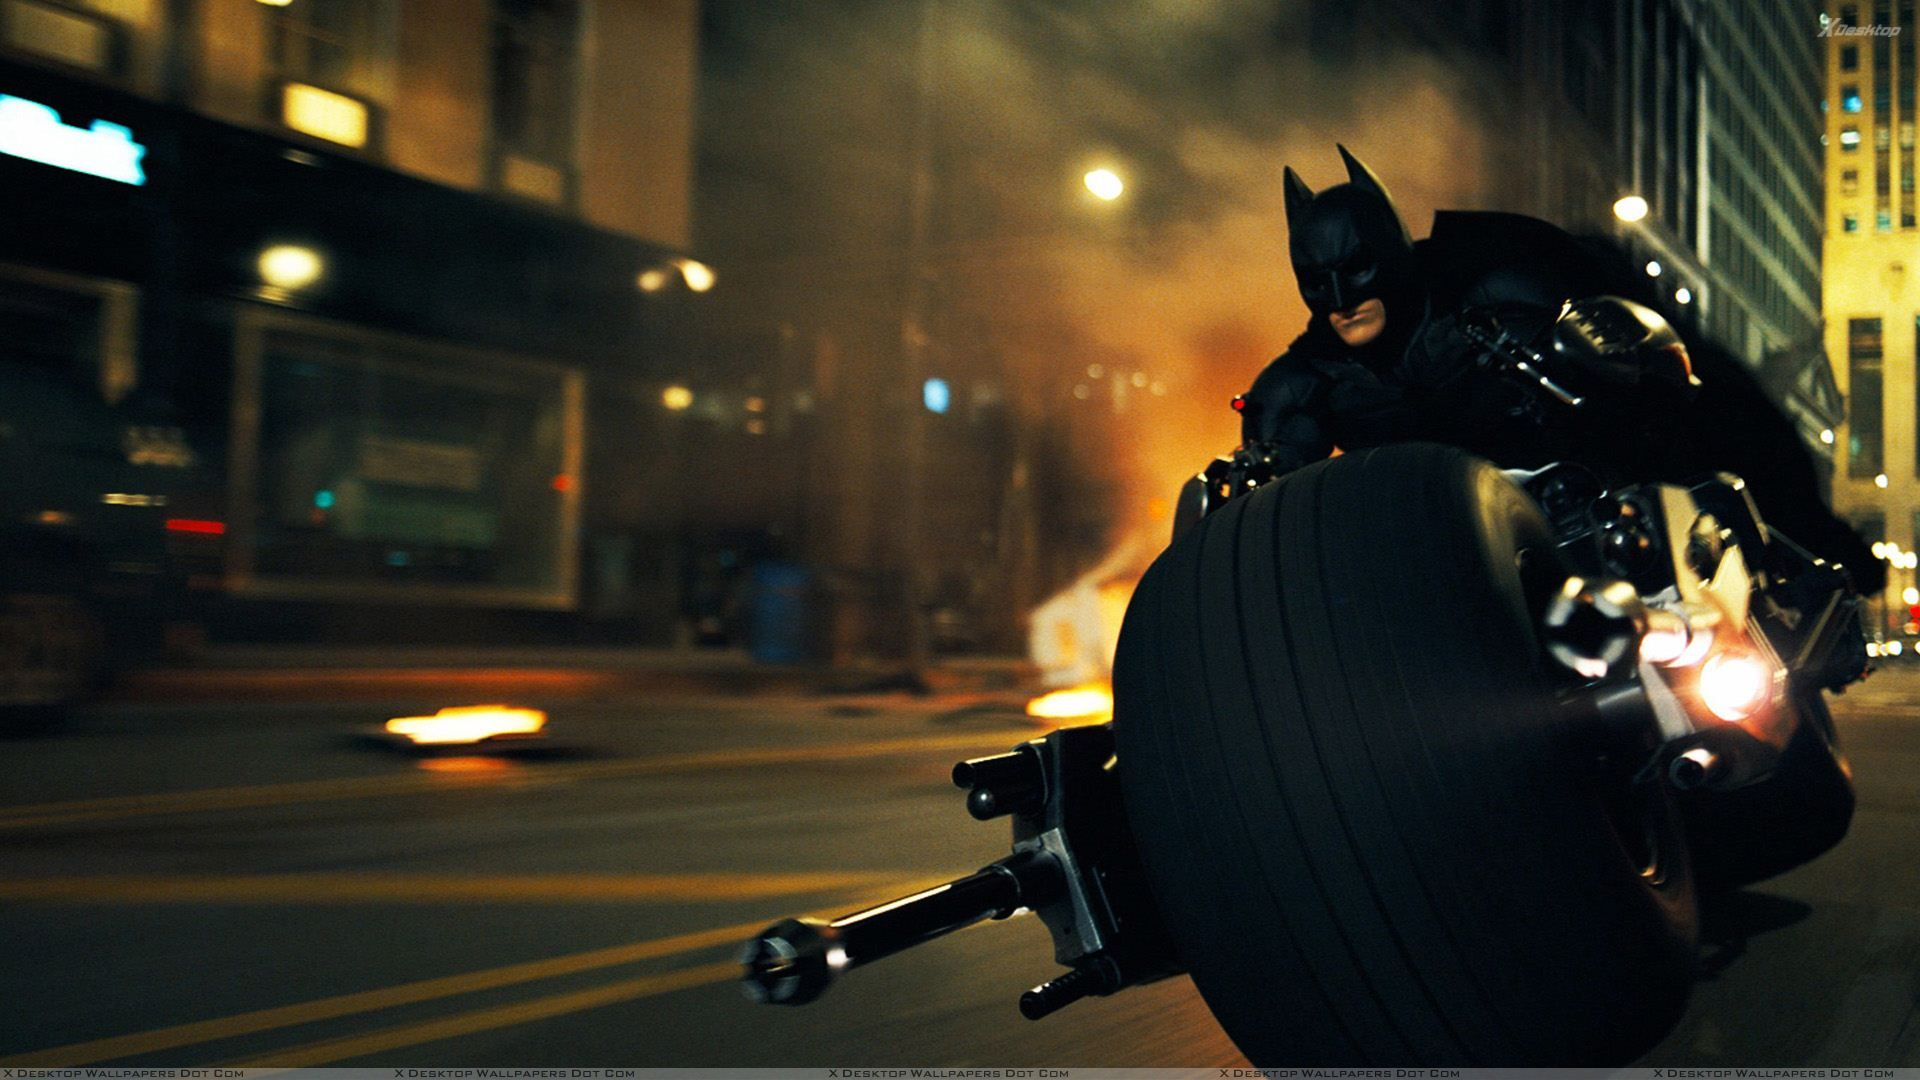 Image result for the dark knight rises screenshot